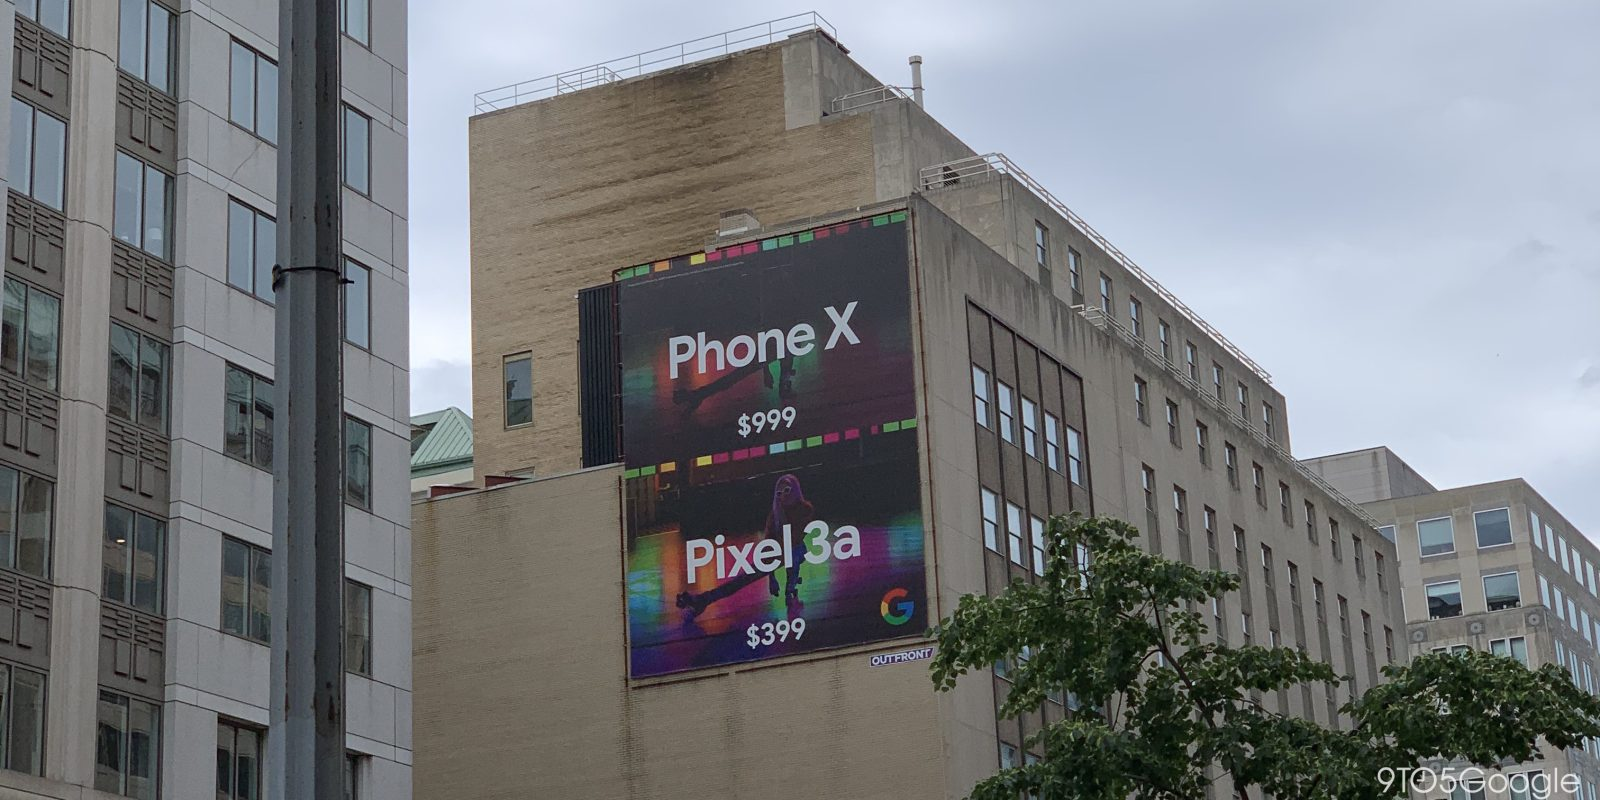 pixel-3a-vs-iphone-ad-cover2.jpg